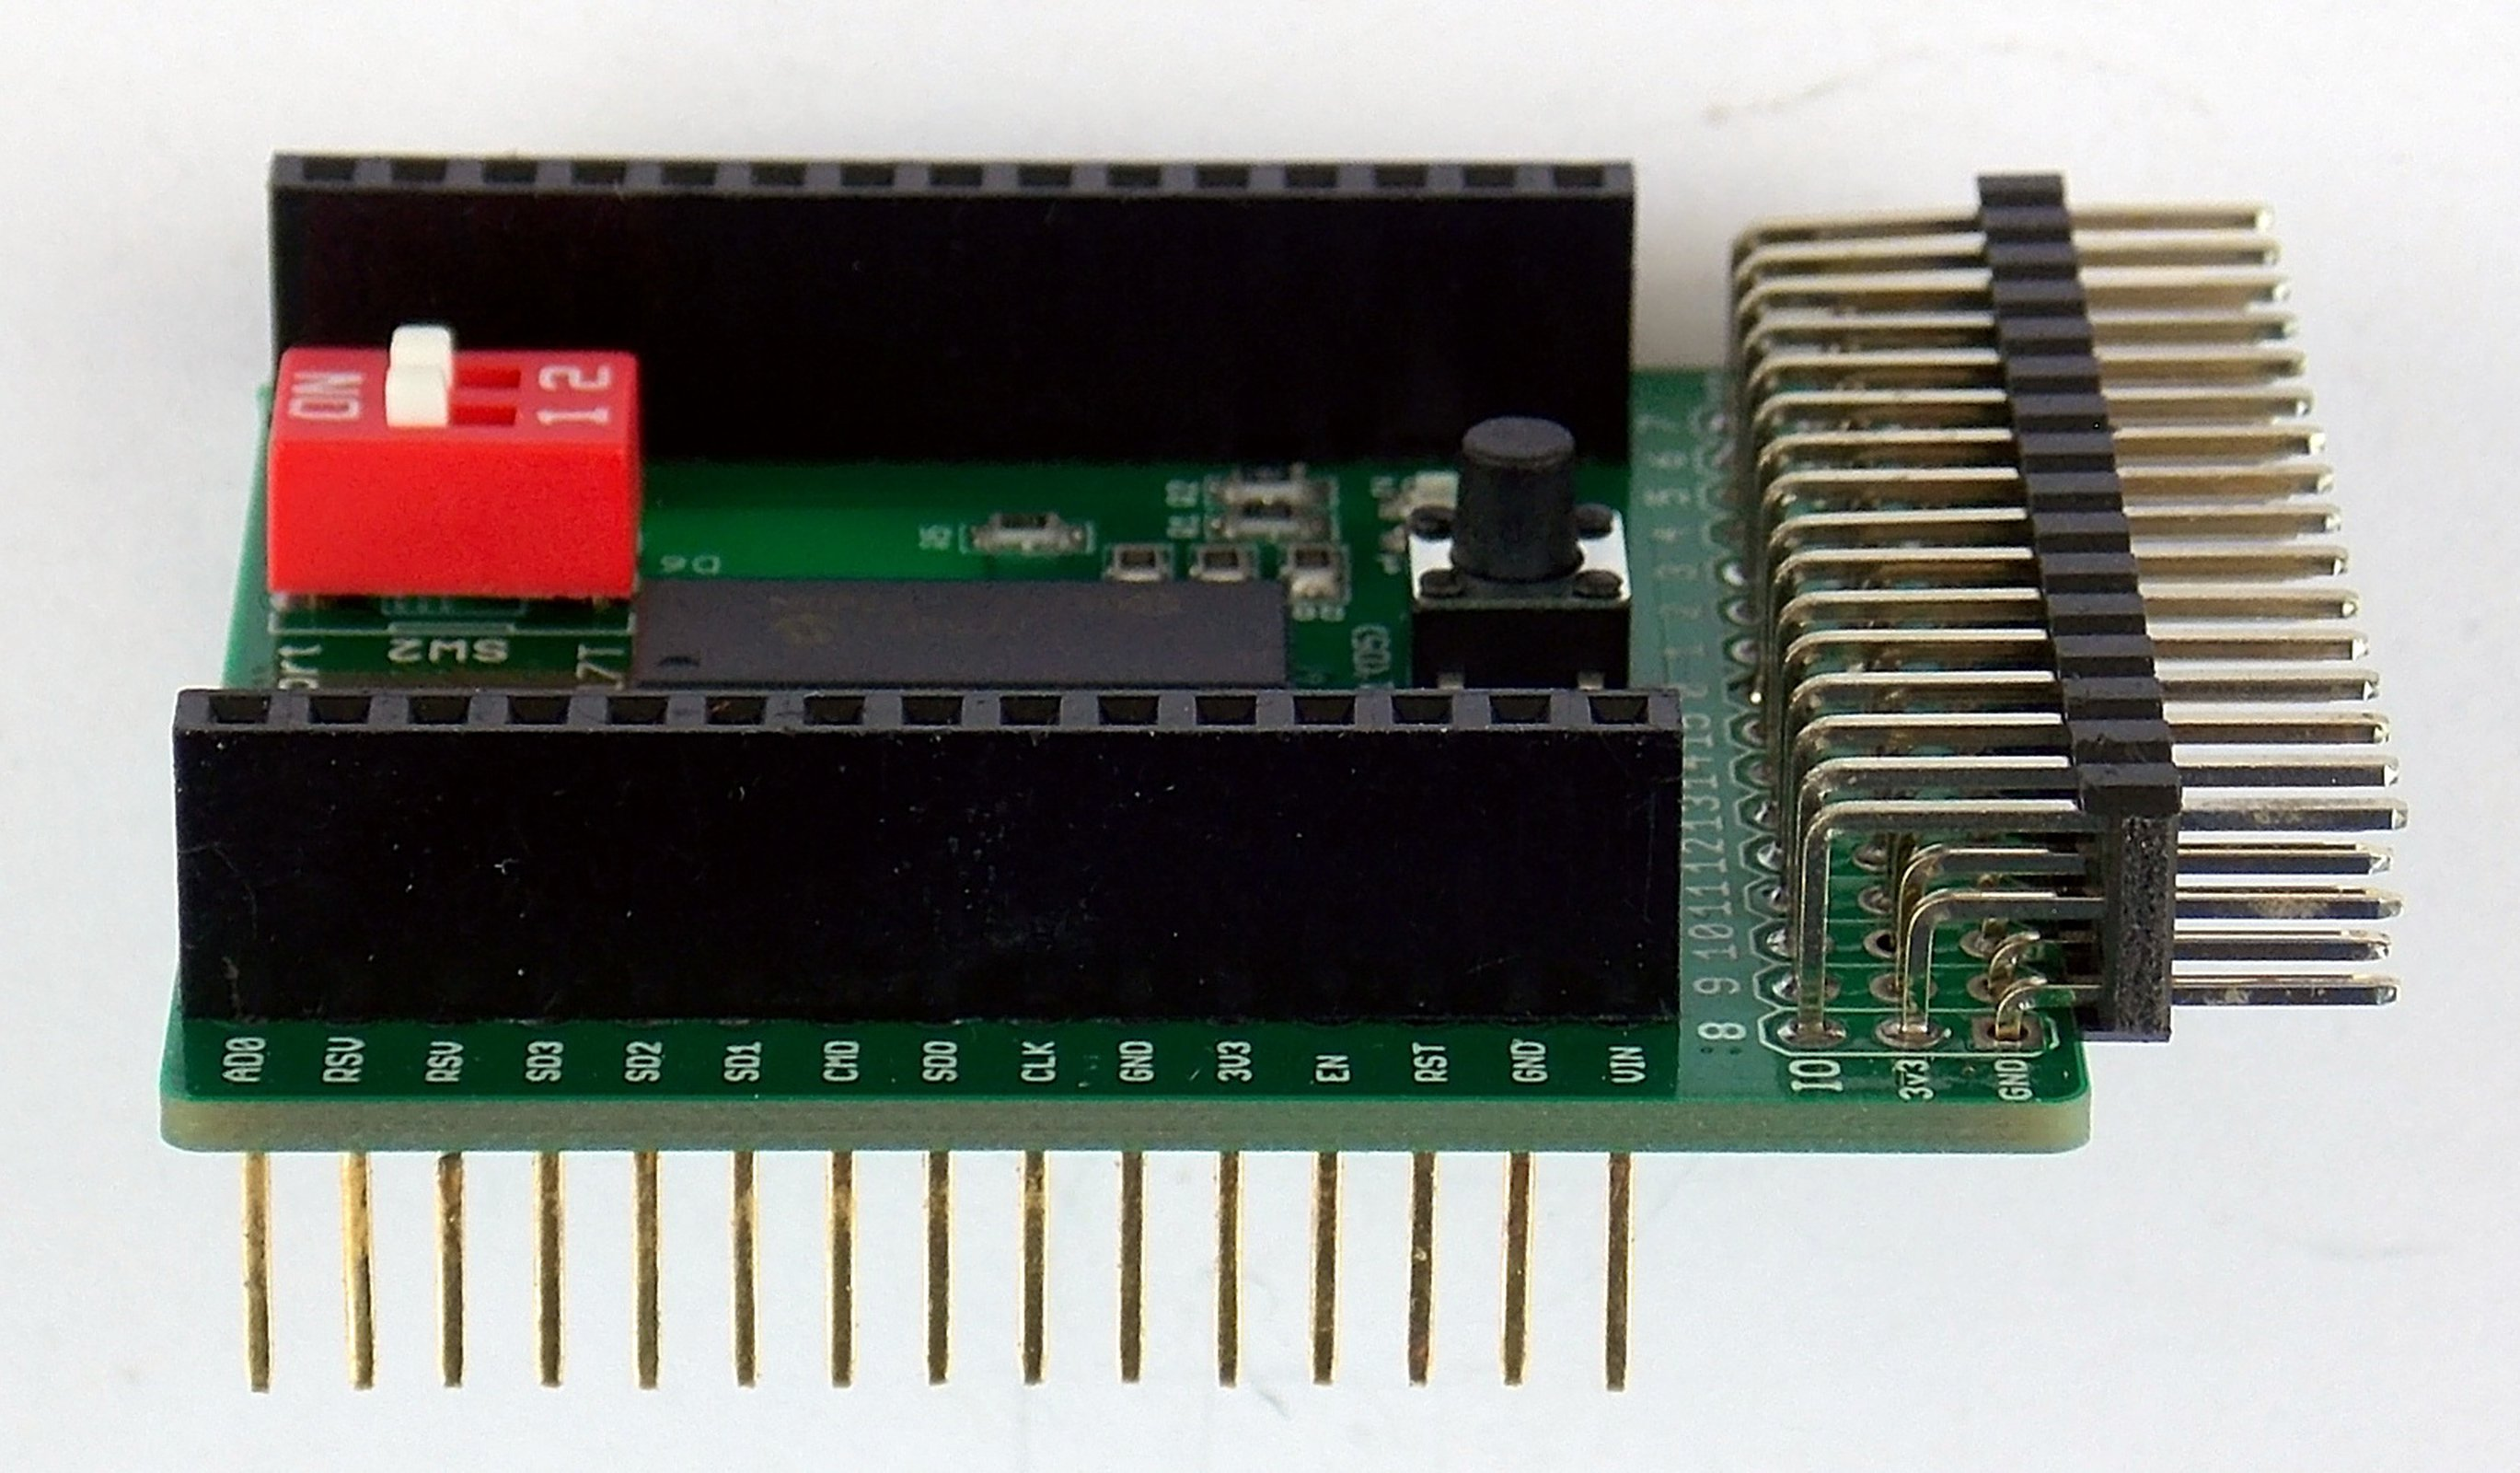 16 Port Io Expansion Shield For Wireless Dev Board From Burgessworld How To Make Custom Shields A Microcontroller 4